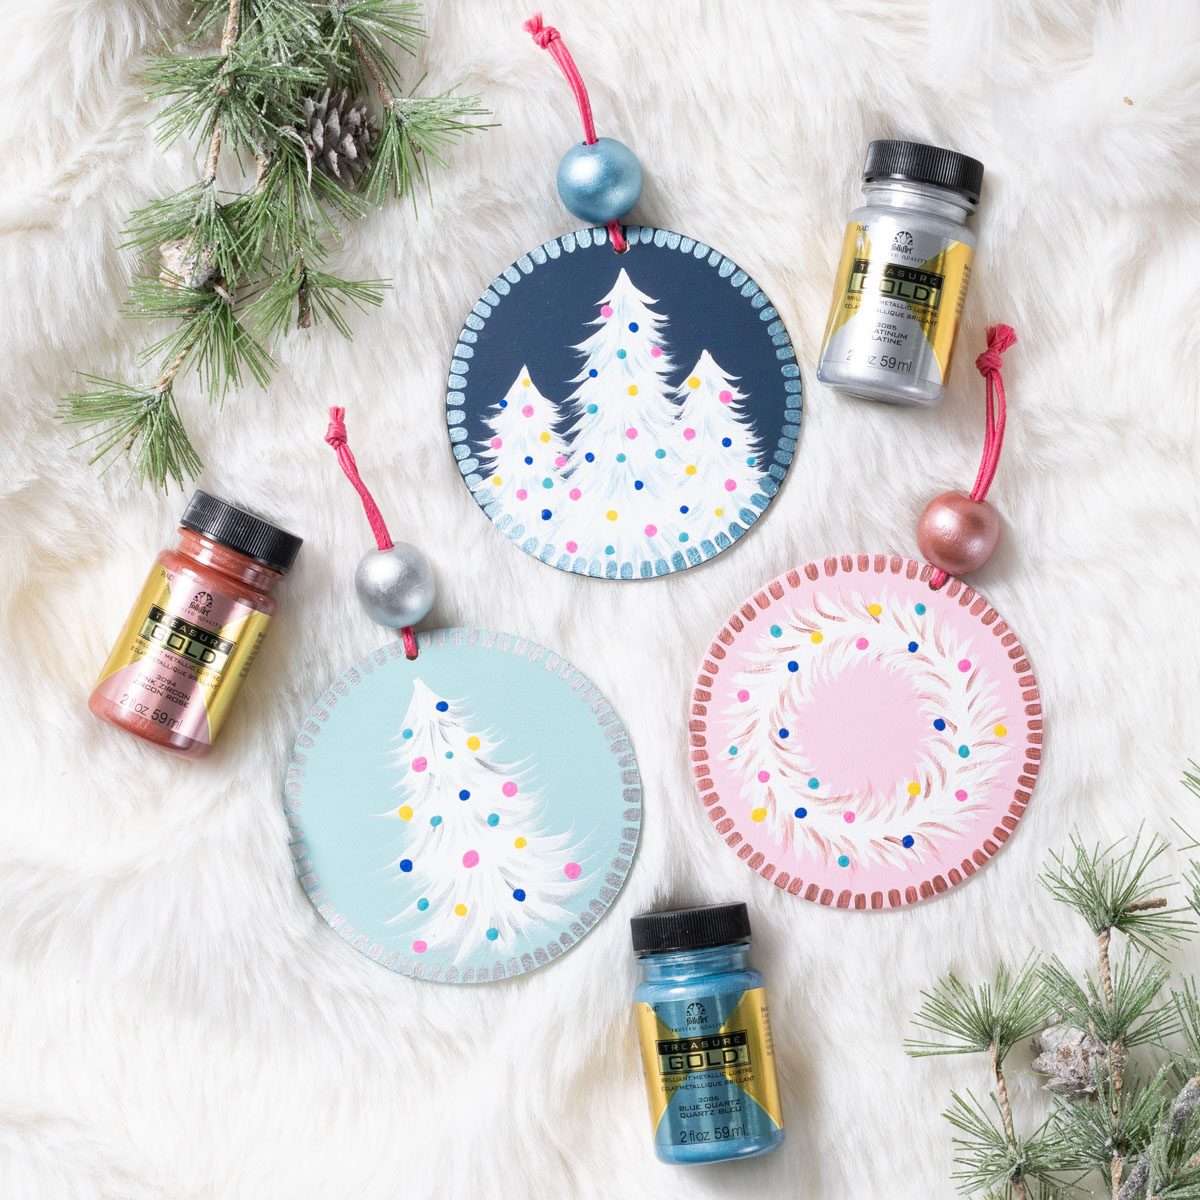 Winter Wonderland Ornaments